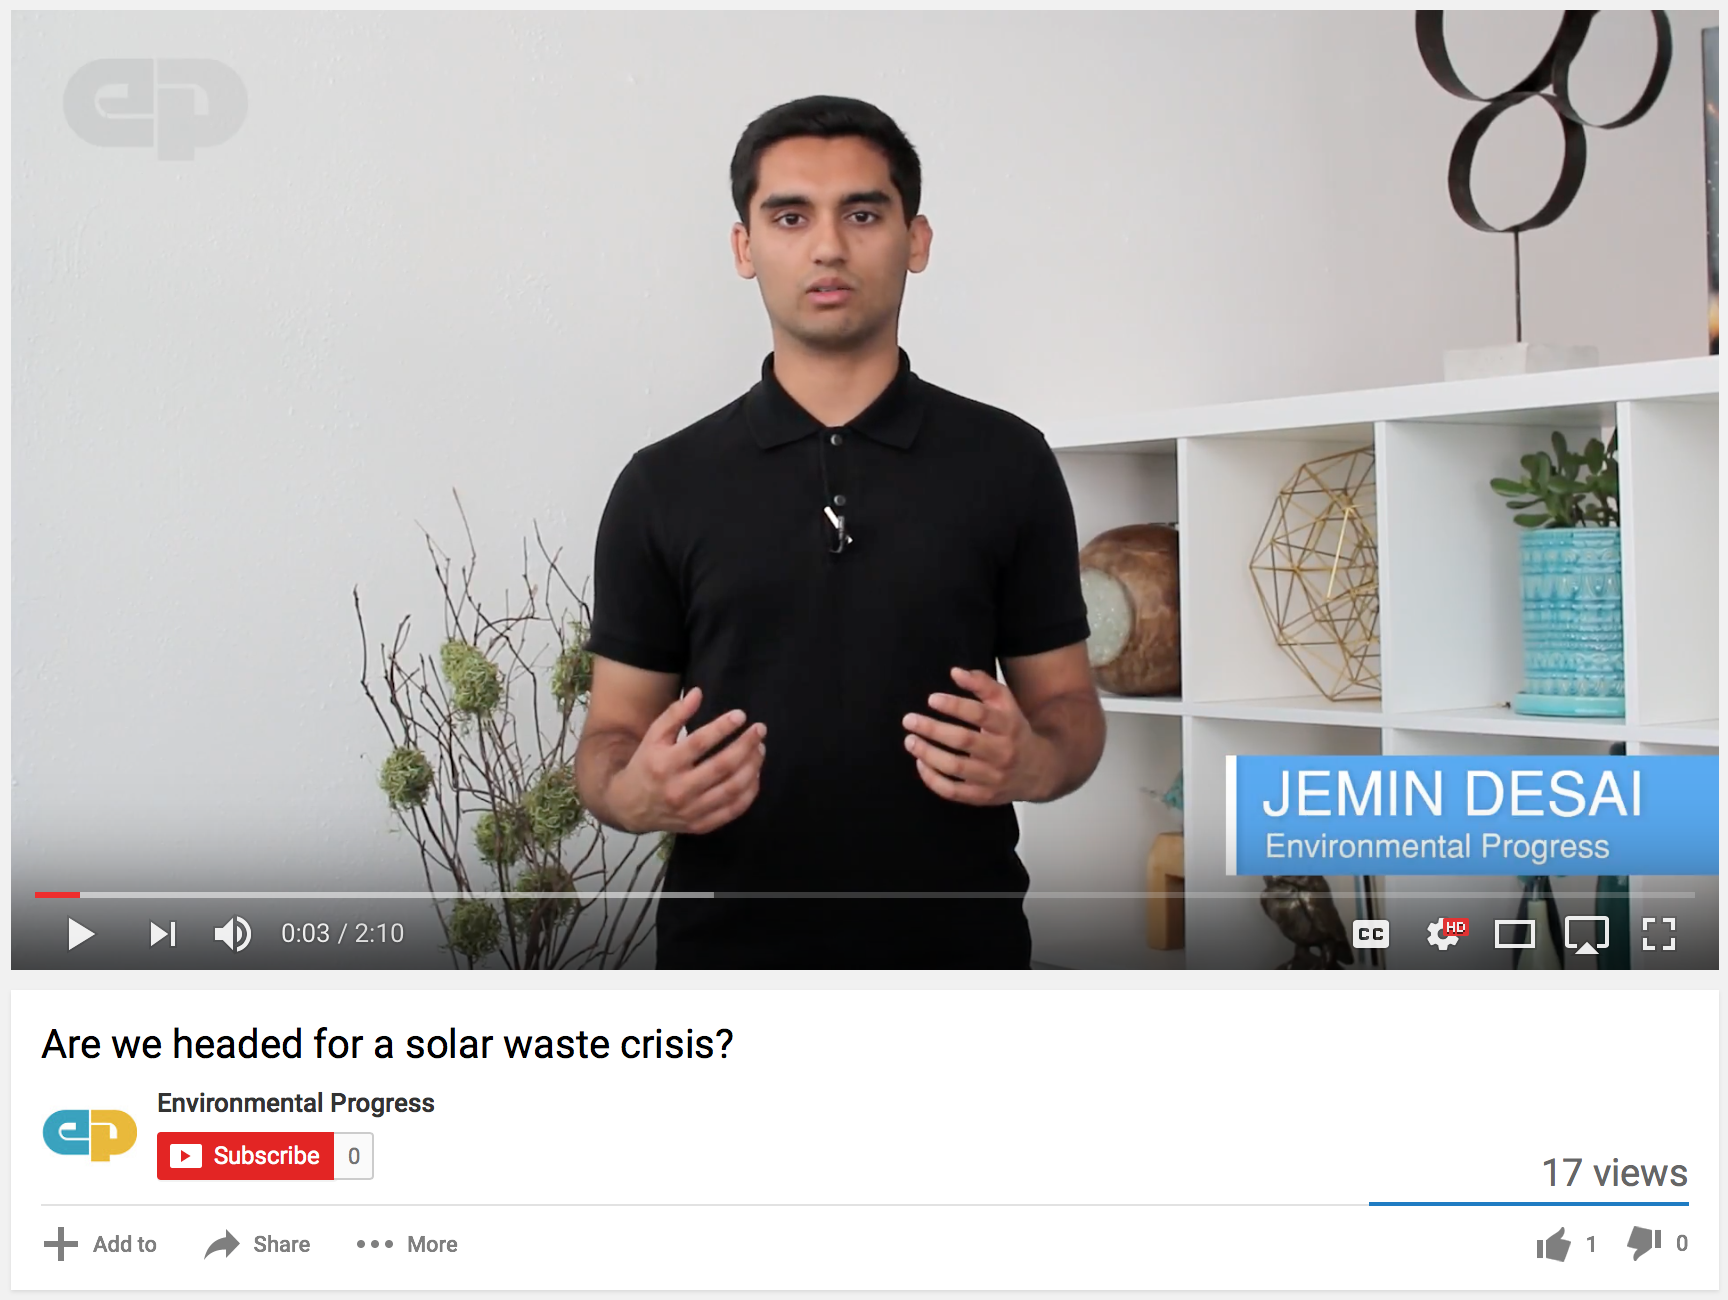 Youtube video By 2017 fellow Jemin Desai